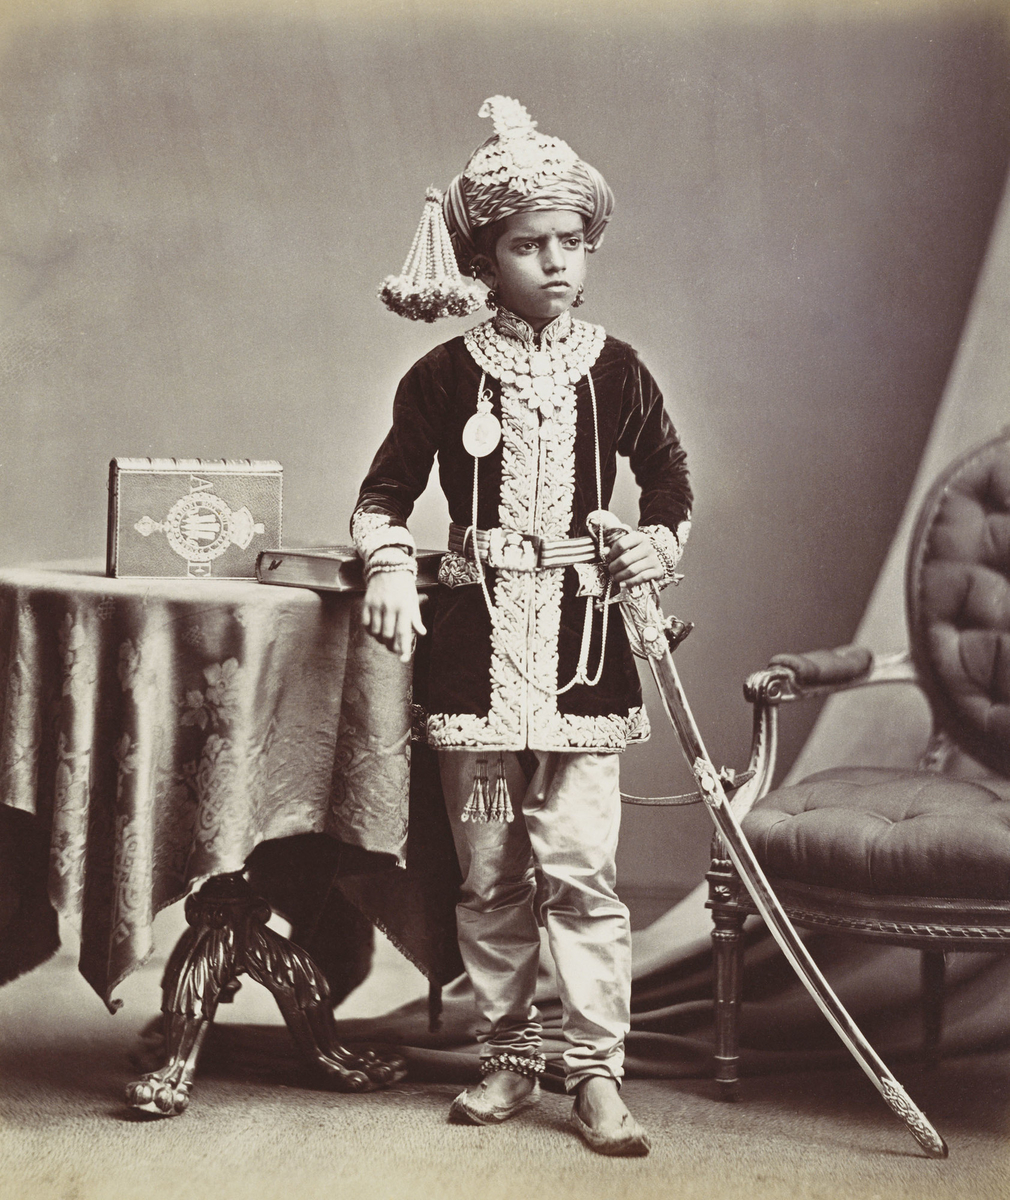 Photograph of Sayaji Rao III Gaekwar, Maharaja of Baroda, who stands facing front, head turned slightly right. He leans with his right arm on book on top of circular table, which also has a second, upright book with the Prince of Wales motif. He wears tur